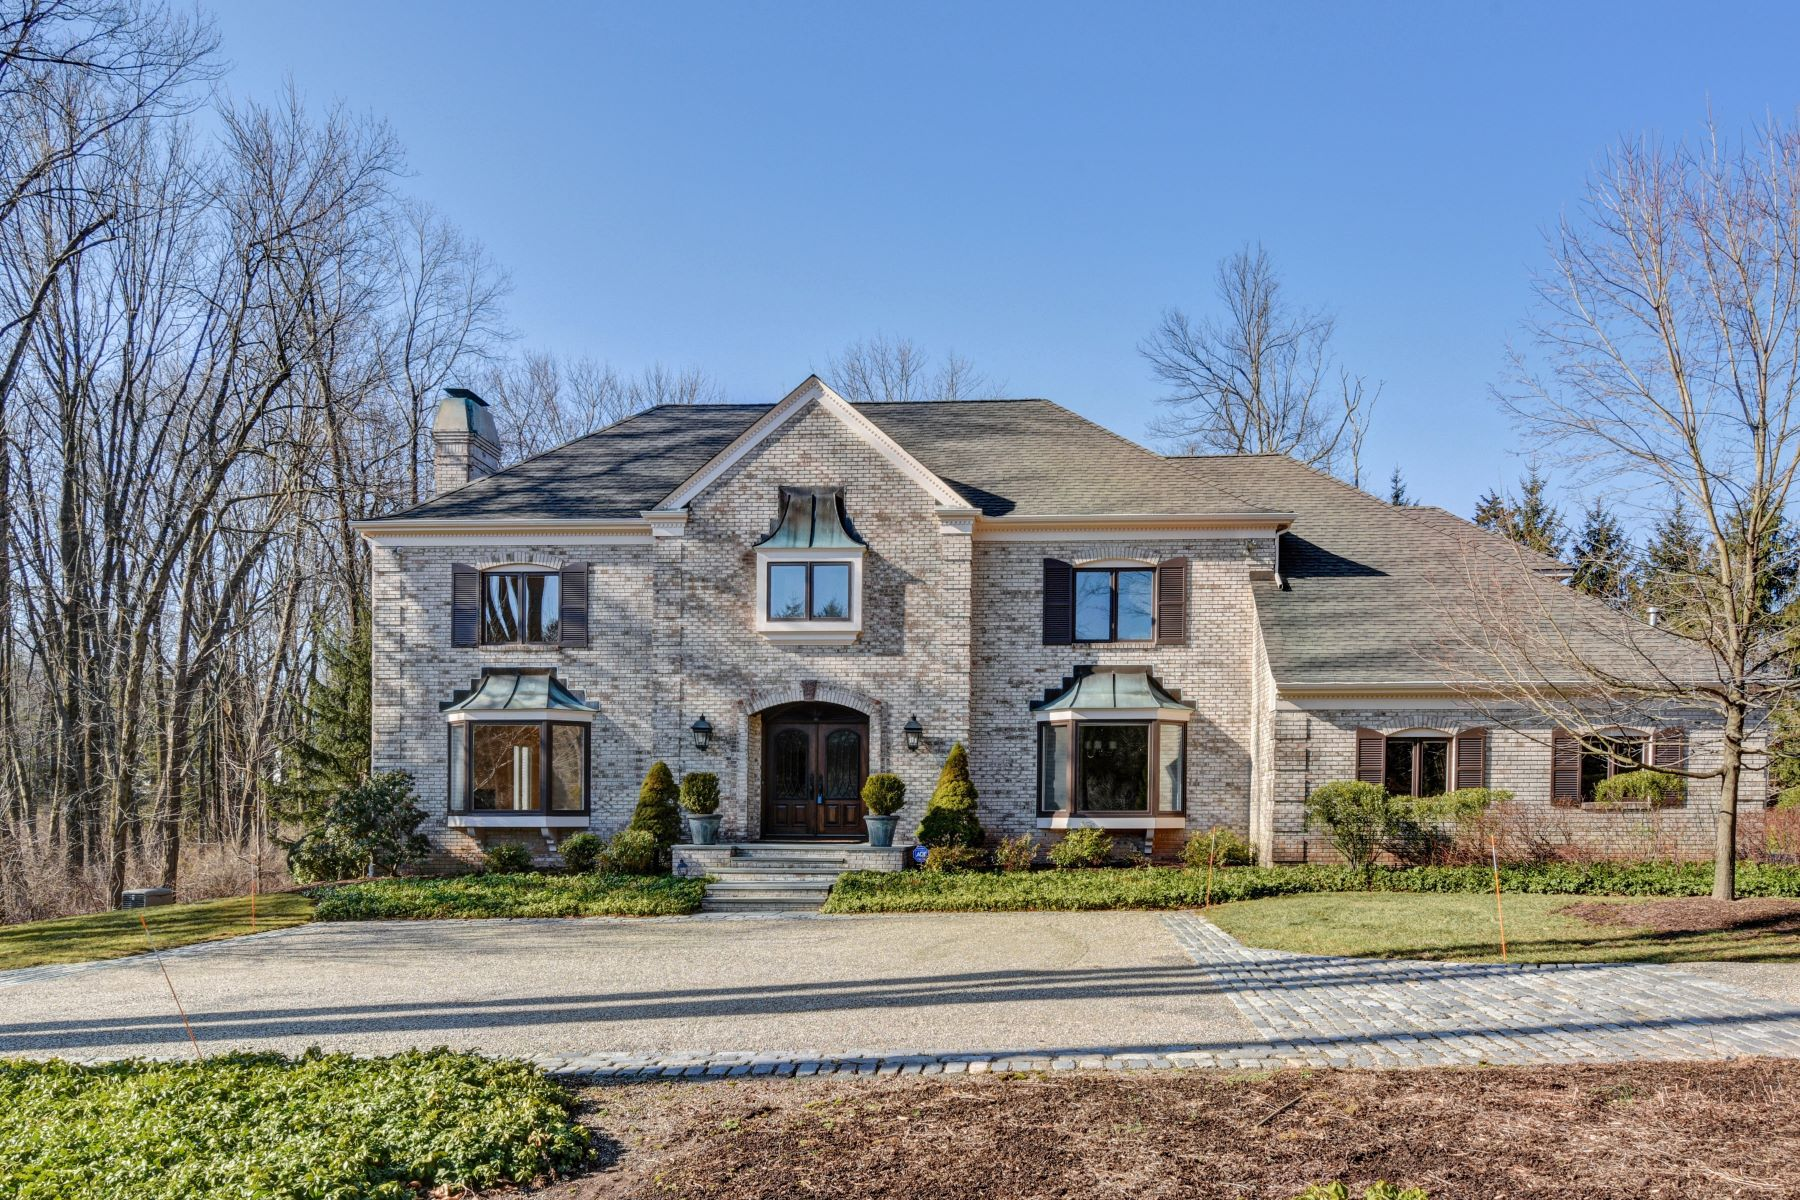 Single Family Homes for Sale at Stately and Tranquil 2 Country Drive Harding Township, New Jersey 07960 United States